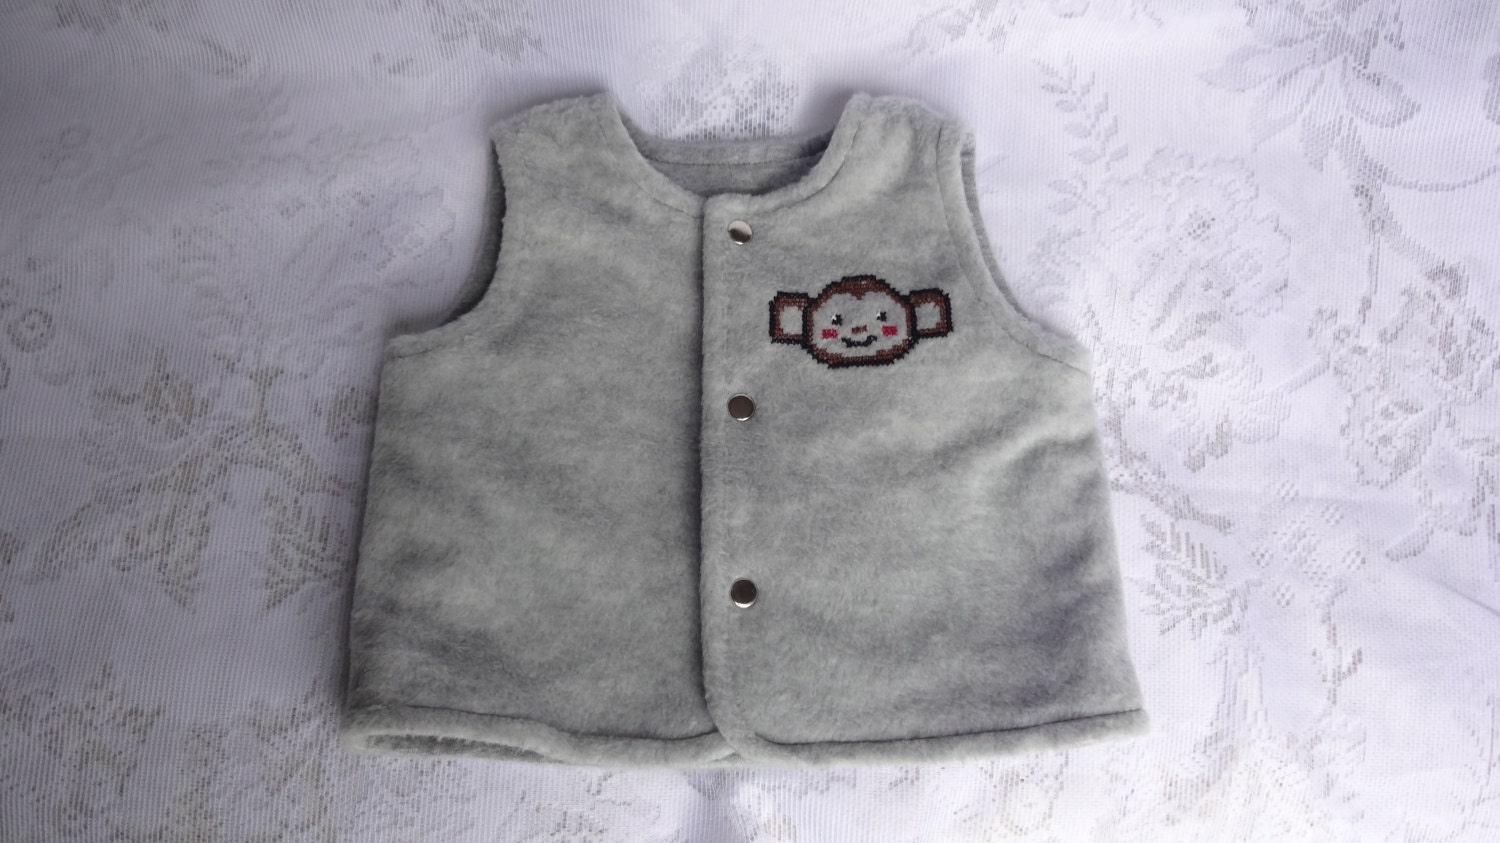 Shop at Etsy to find unique and handmade baby boy fleece vest related items directly from our sellers. Close Beginning of a dialog window, including tabbed navigation to .